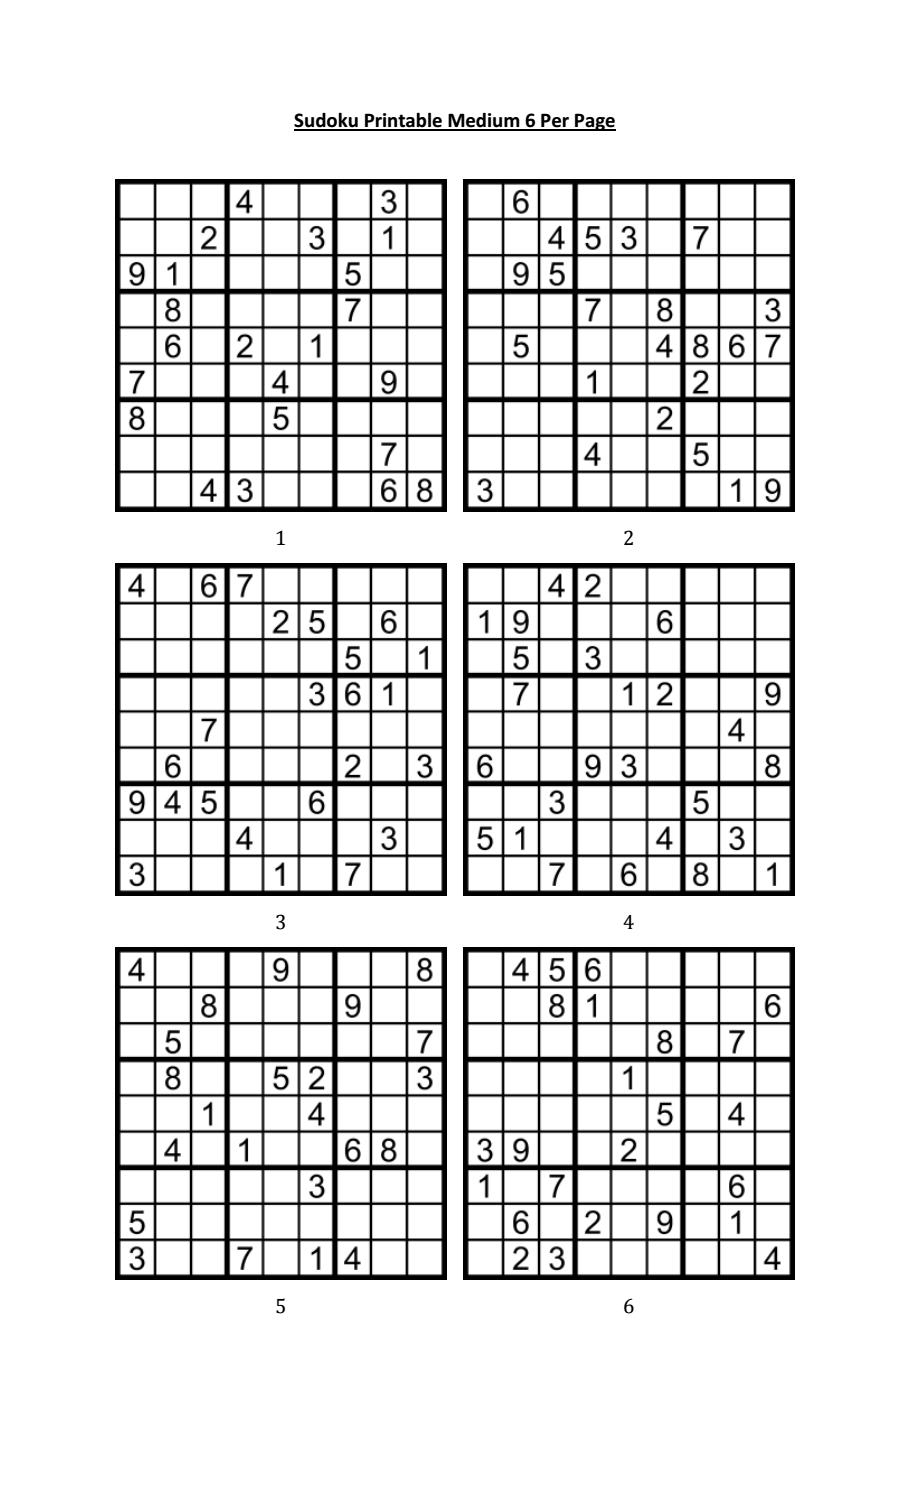 Sudoku Printable Medium 6 Per Pageaaron Woodyear - Issuu